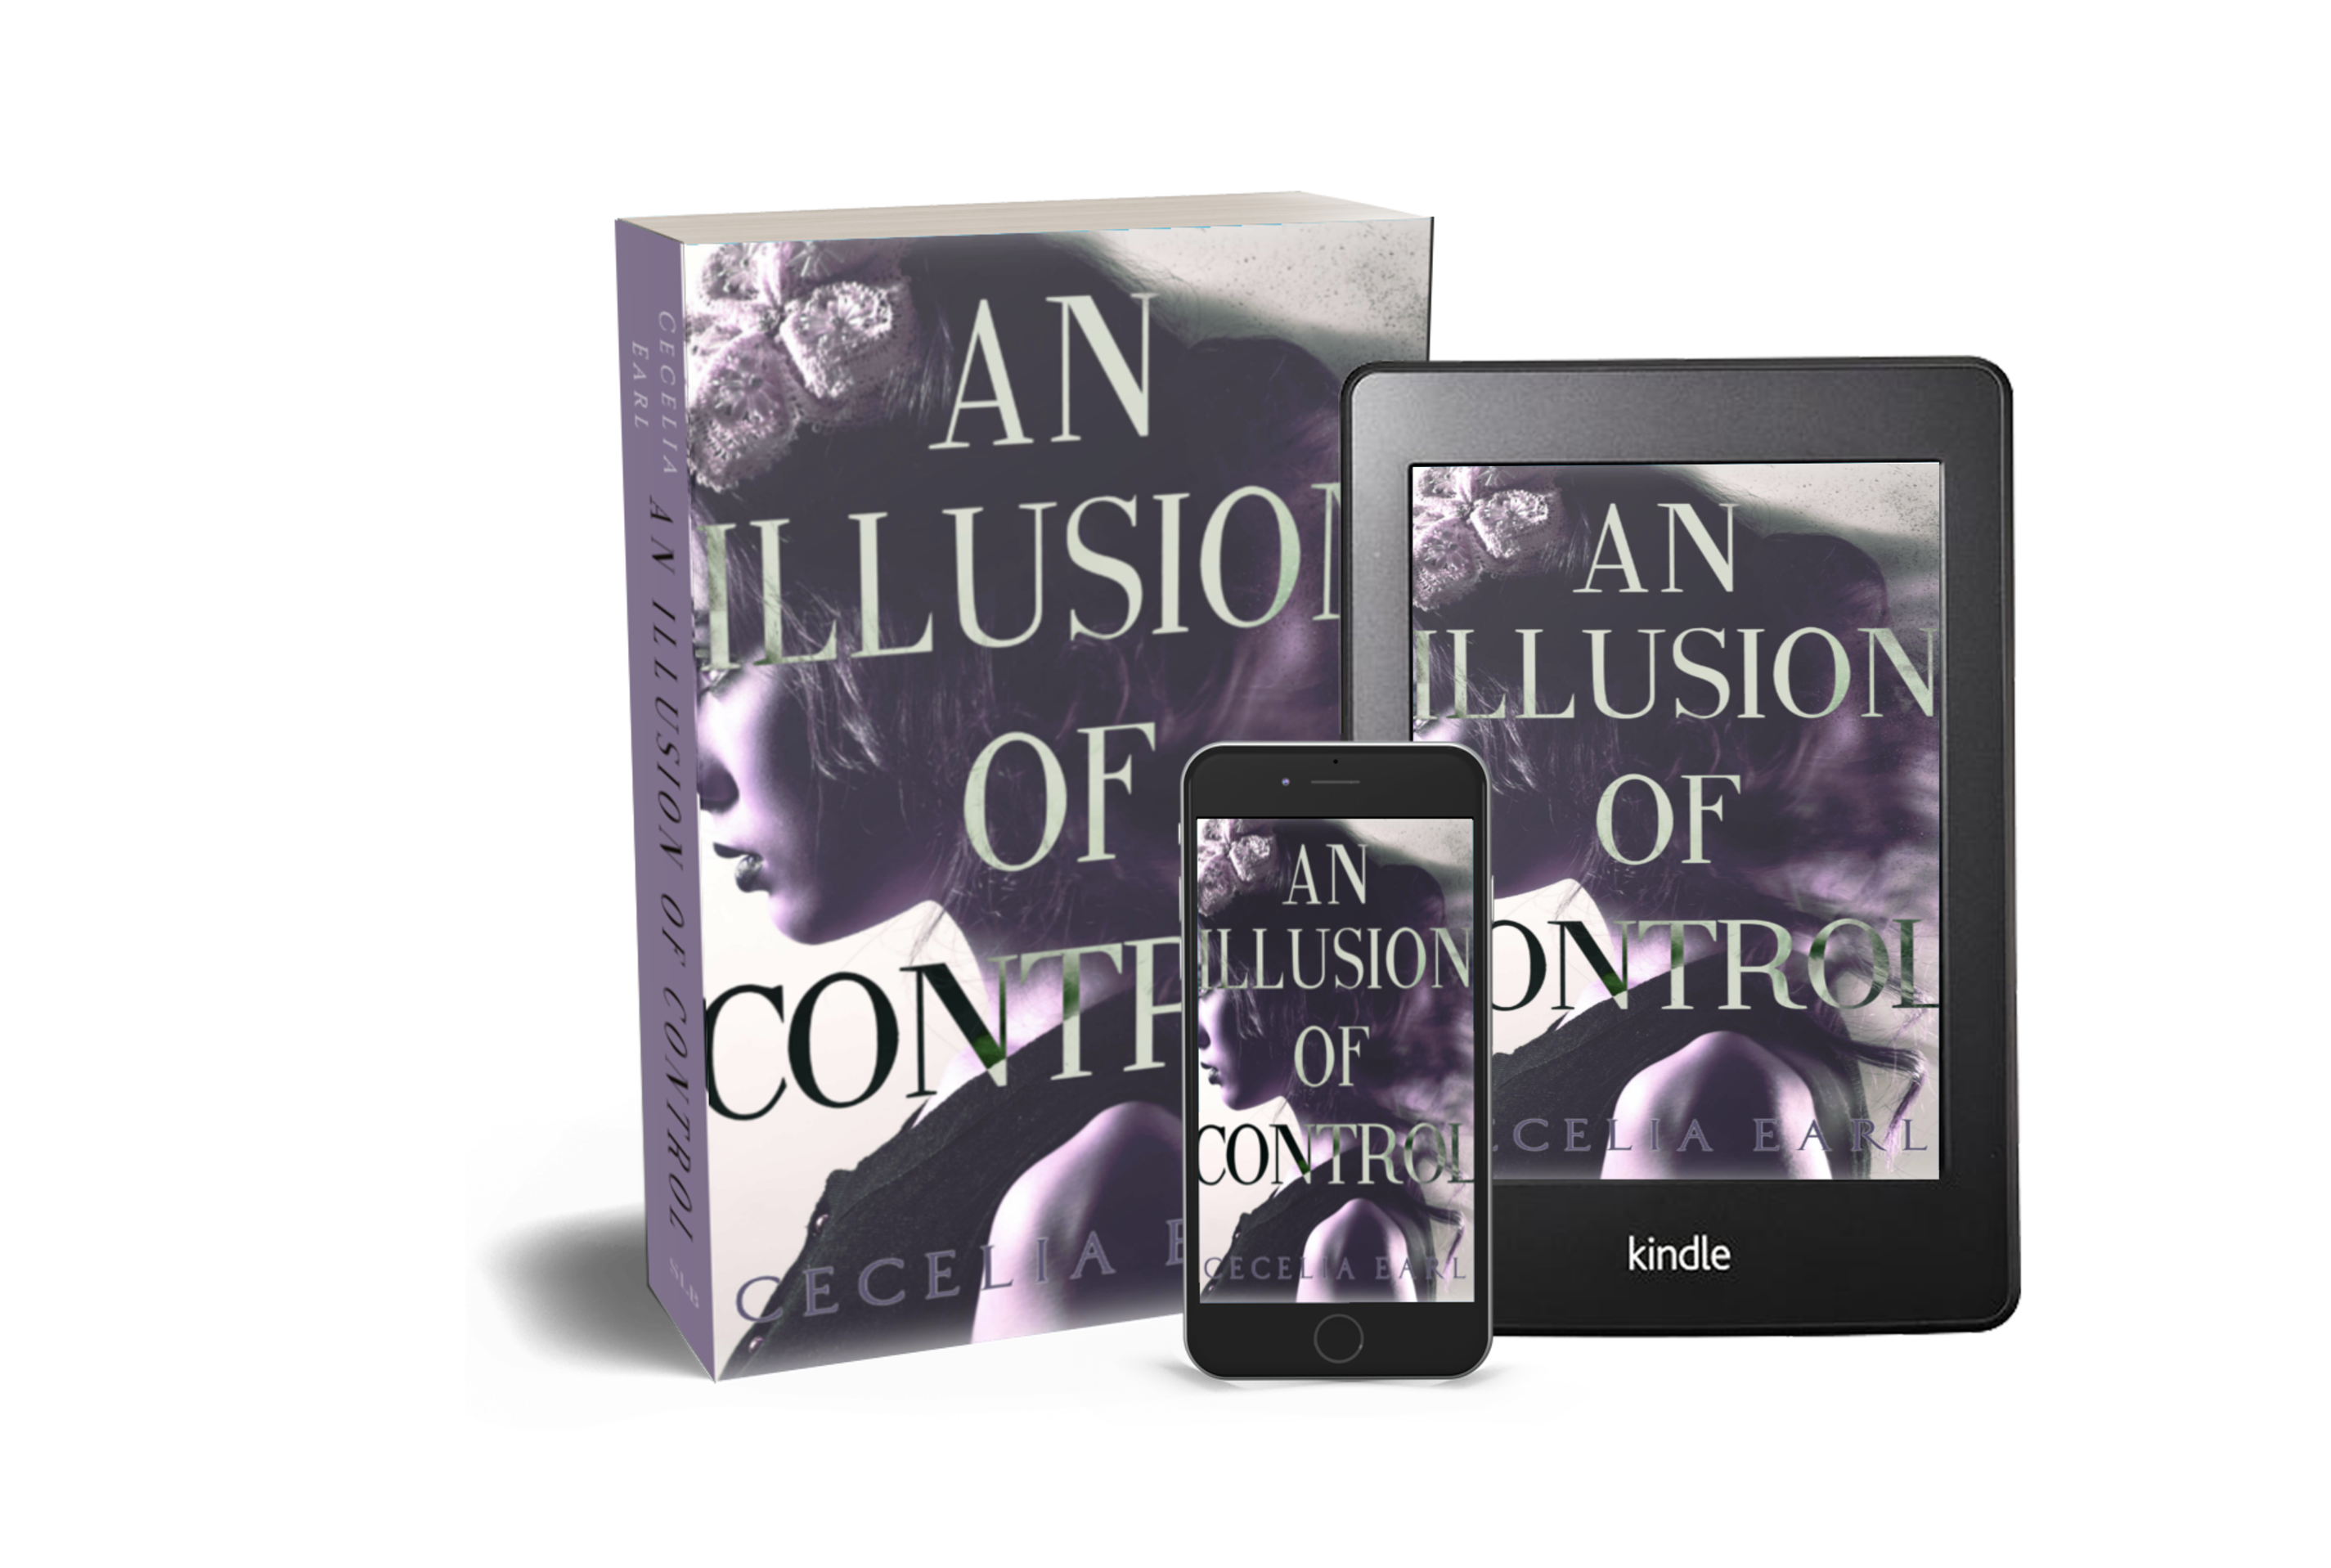 an illusion of control 3d